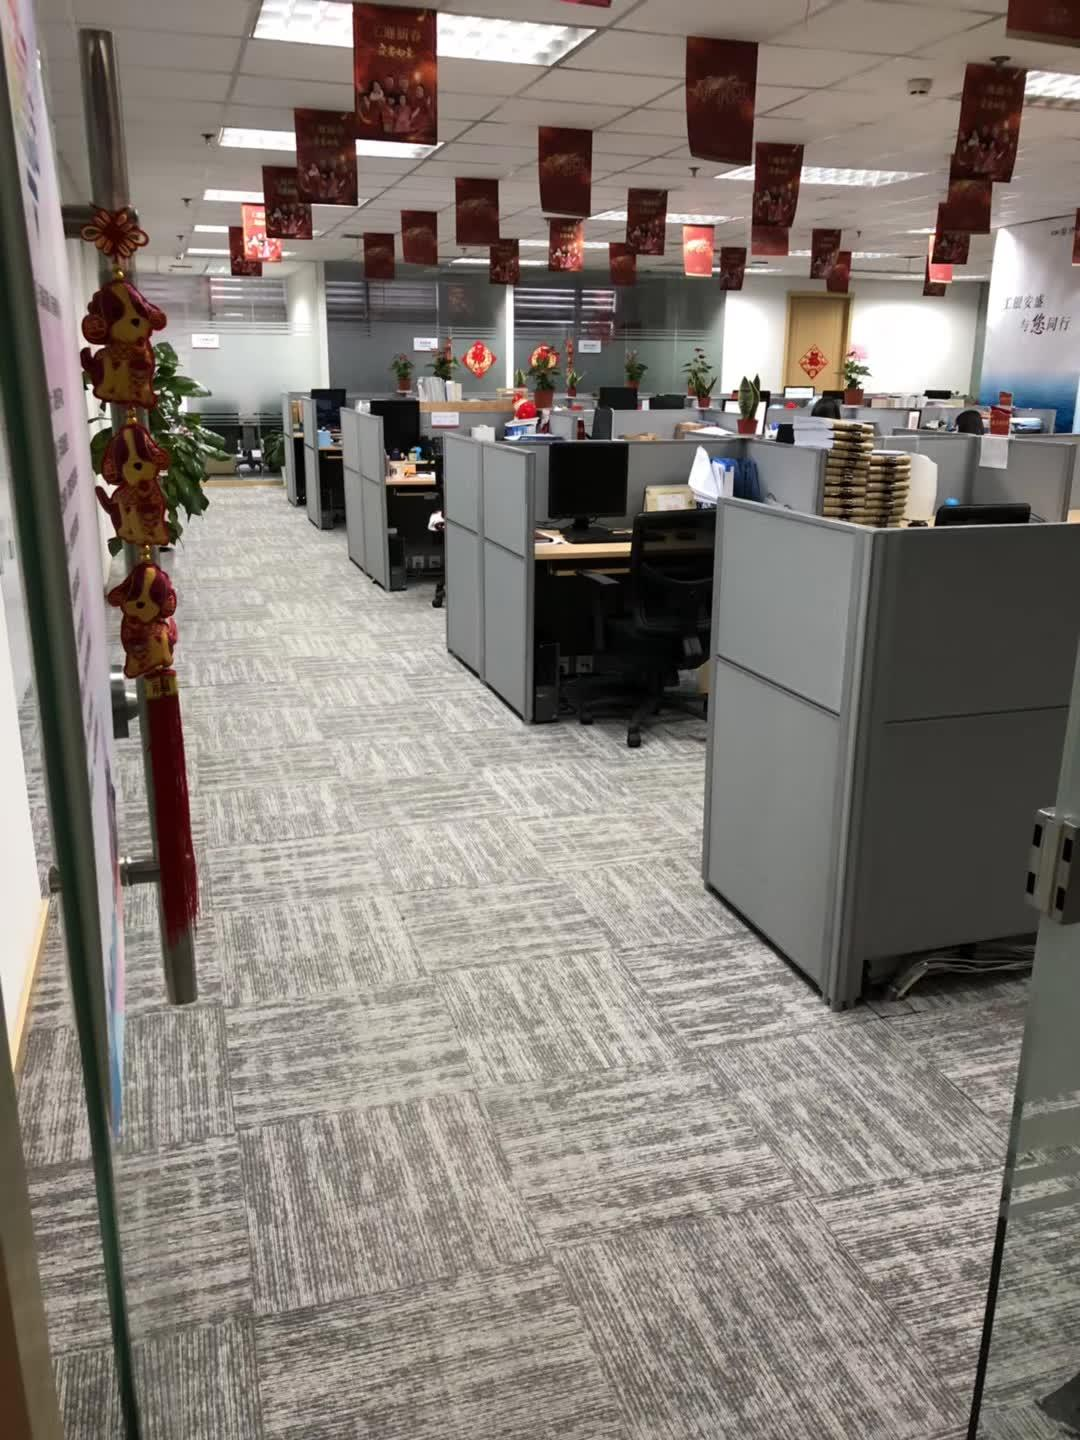 China 50x50cm Plain Old Design Multi Level Loop Machine Customized Office Carpet Conference Room Carpet Tiles High End Office Carpet Tile China Carpet Tile And Office Carpet Price